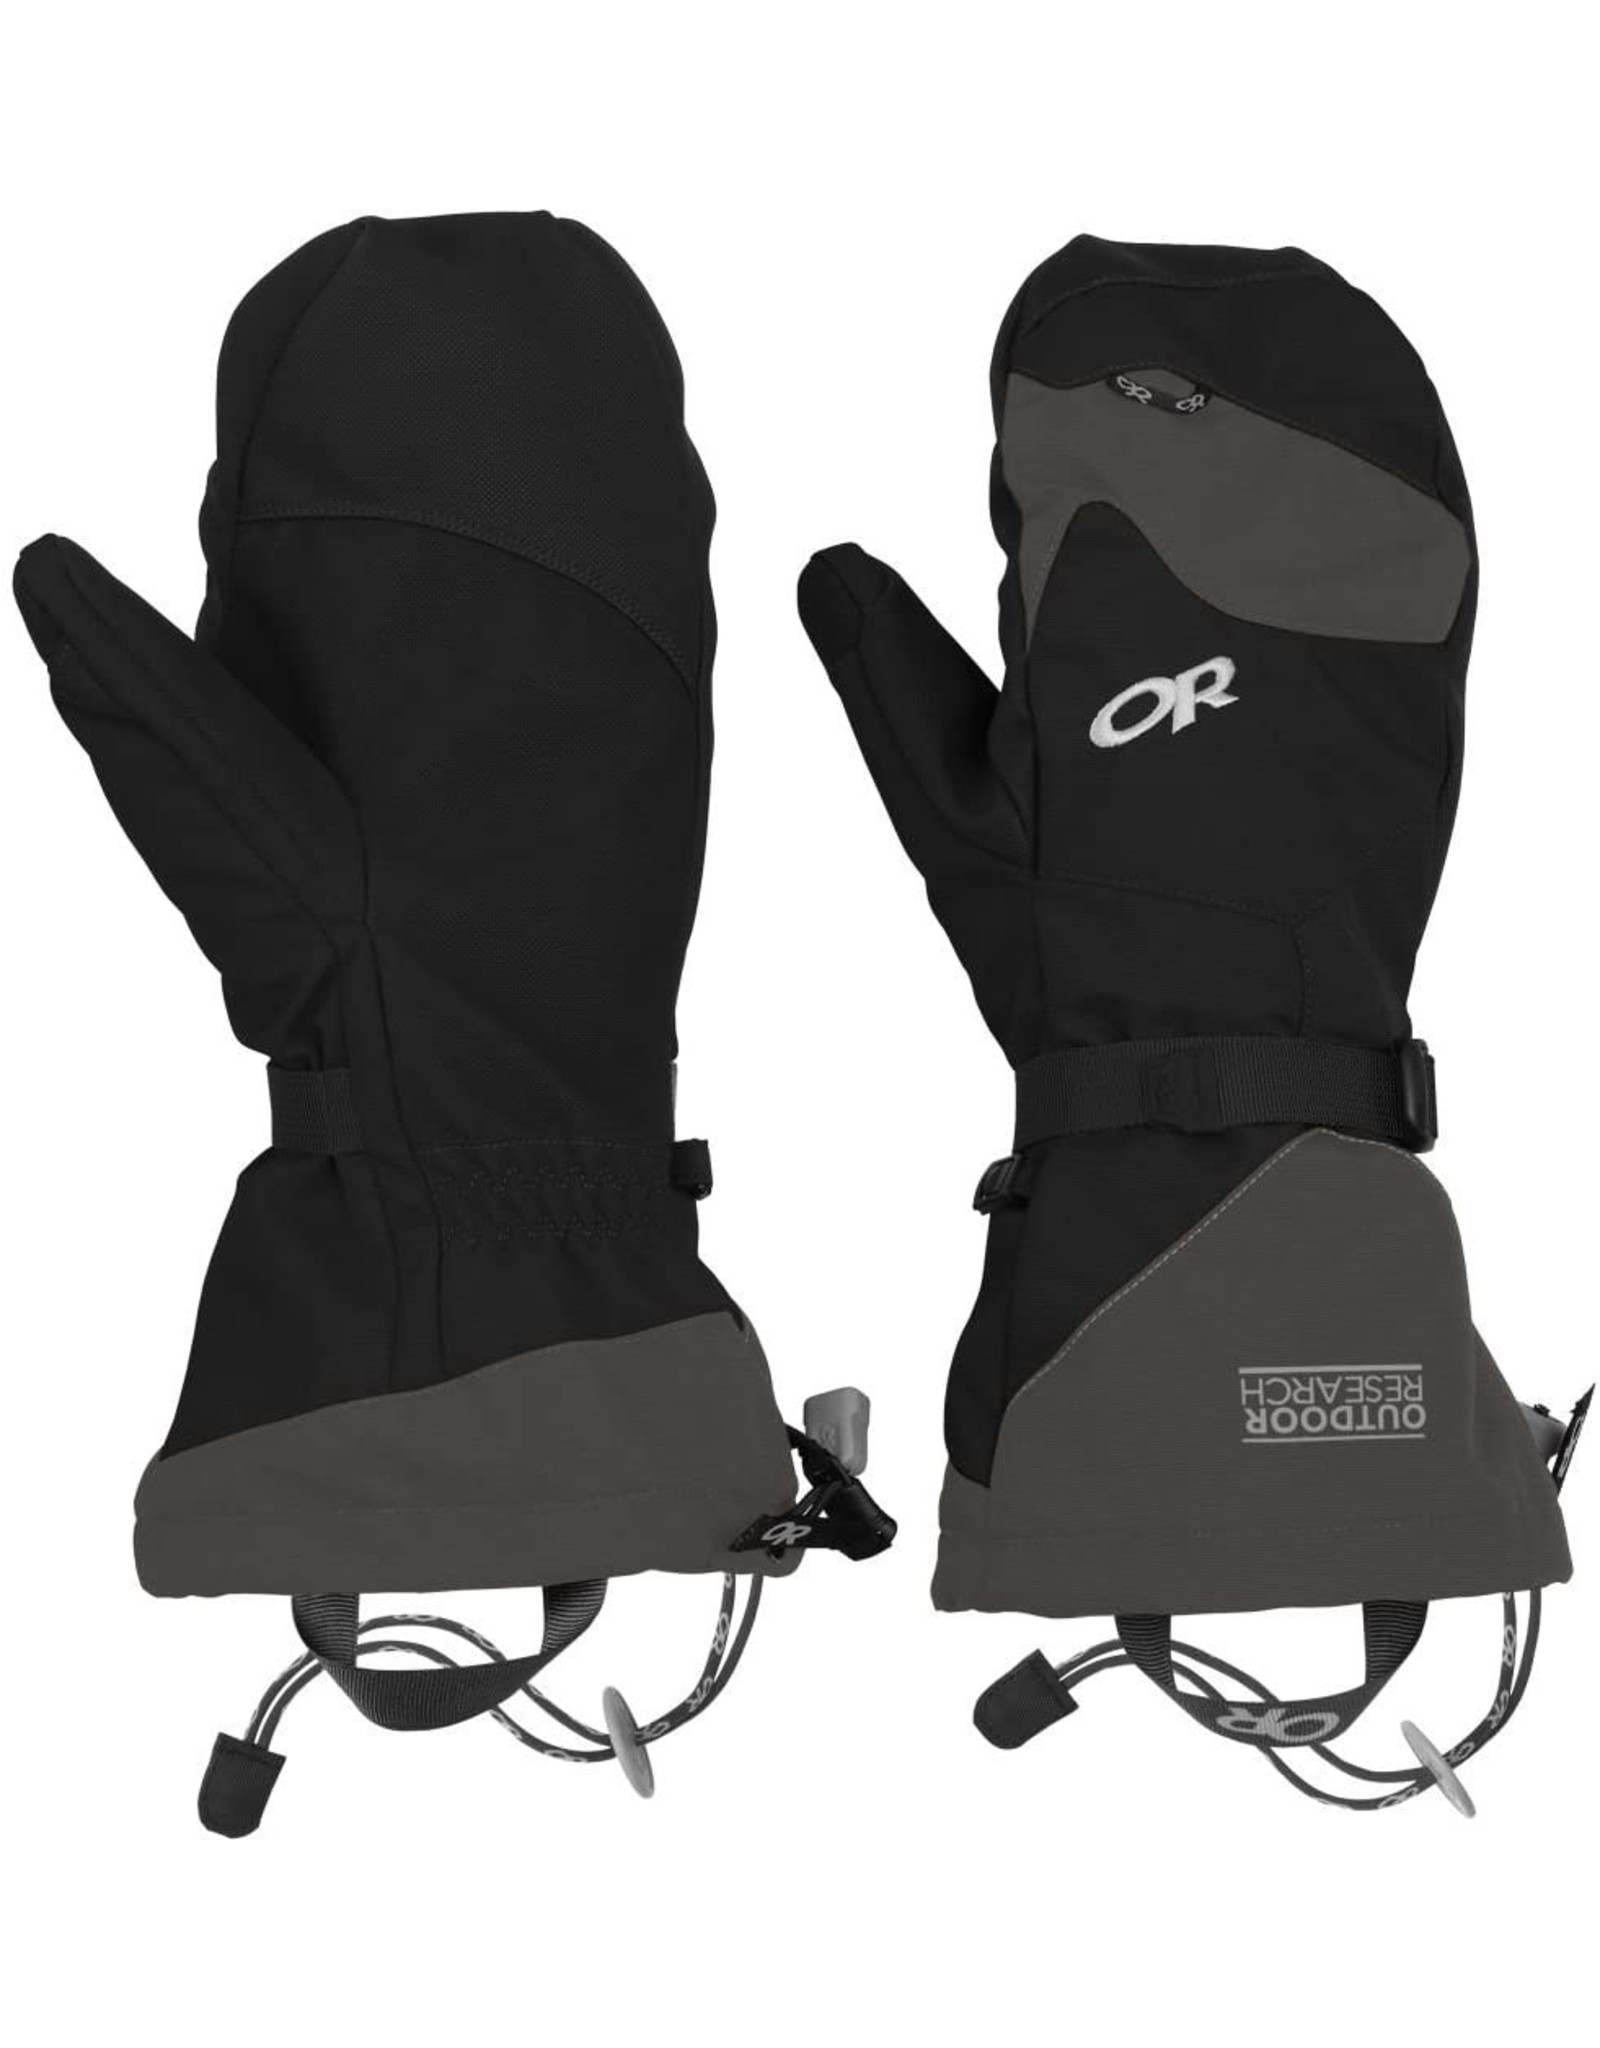 OUTDOOR RESEARCH OR METEOR GLOVES